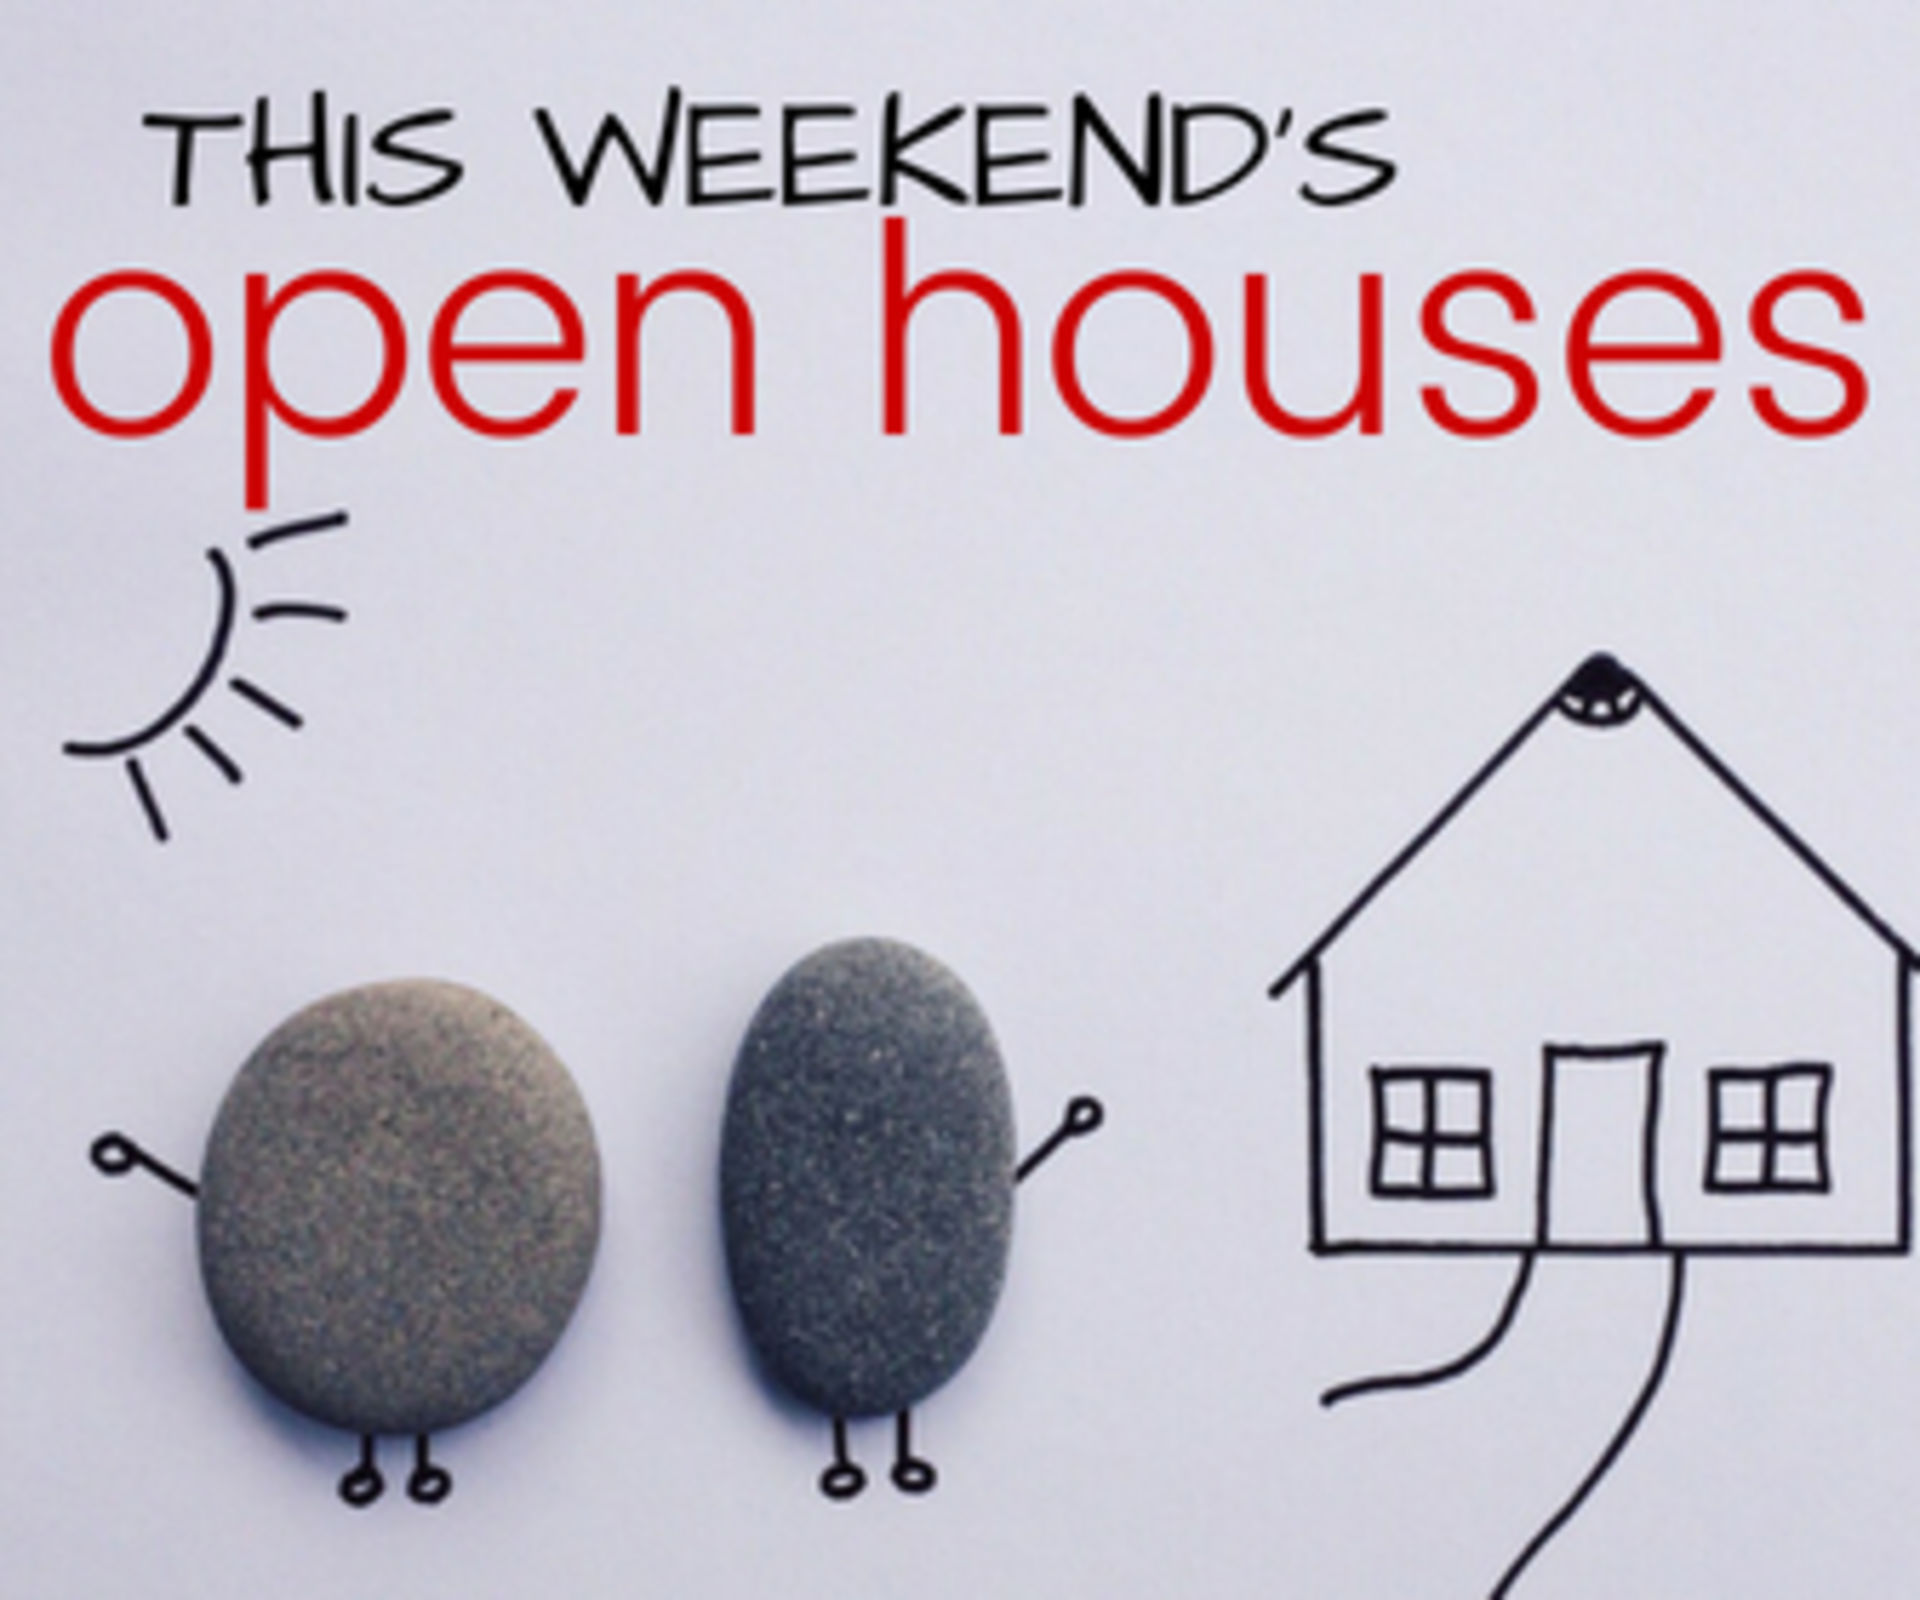 Shawnee OPEN HOUSES this Weekend! March 2nd and 3rd!